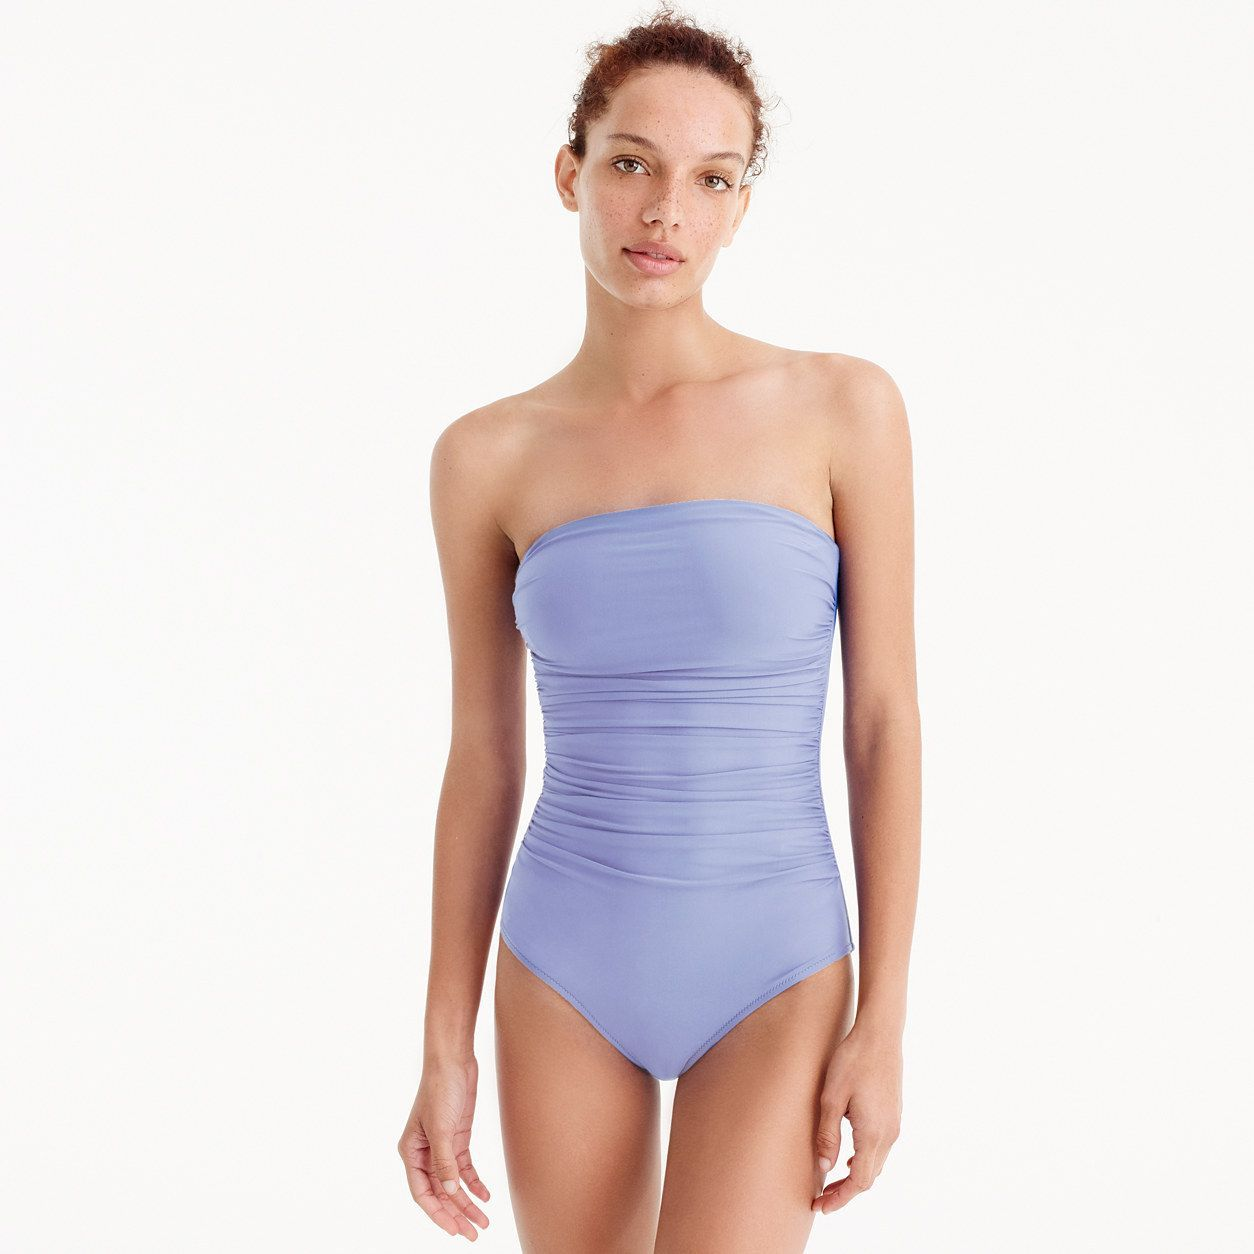 7dc86a8778715 J.Crew Womens Ruched Bandeau One-Piece Swimsuit (Size 10)